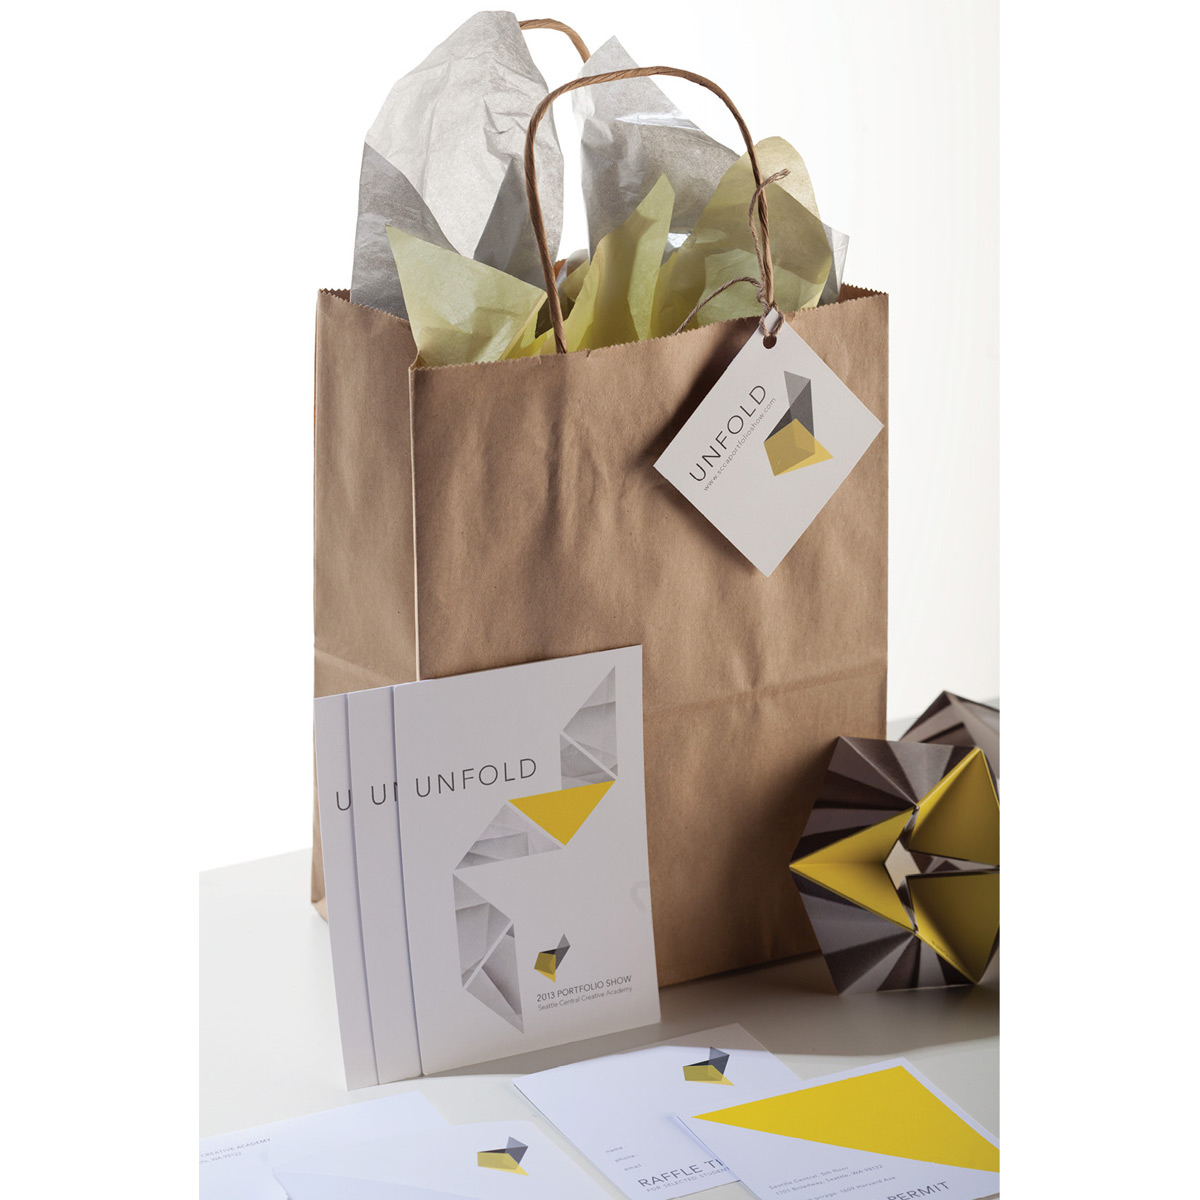 Unfold goodie bags